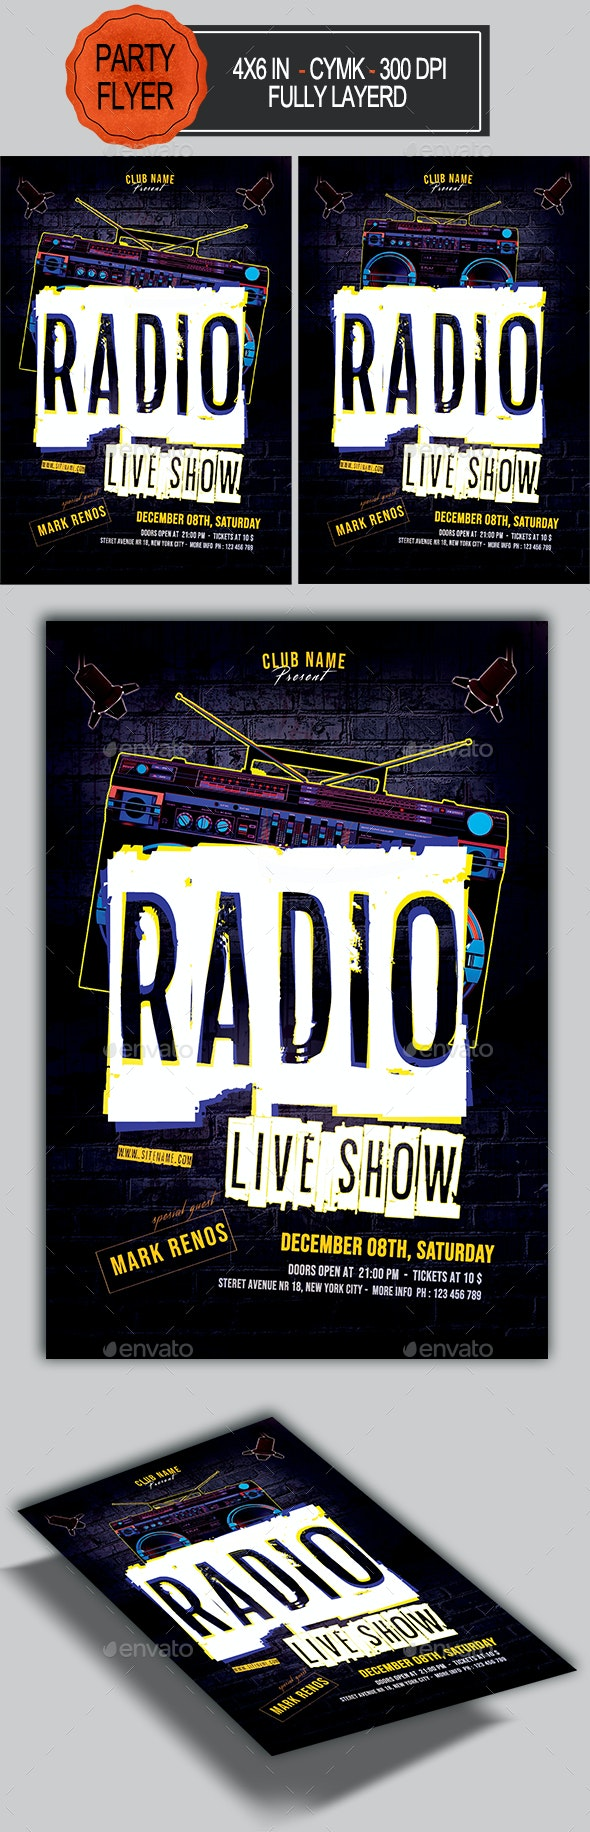 Radio Show Flyer - Clubs & Parties Events